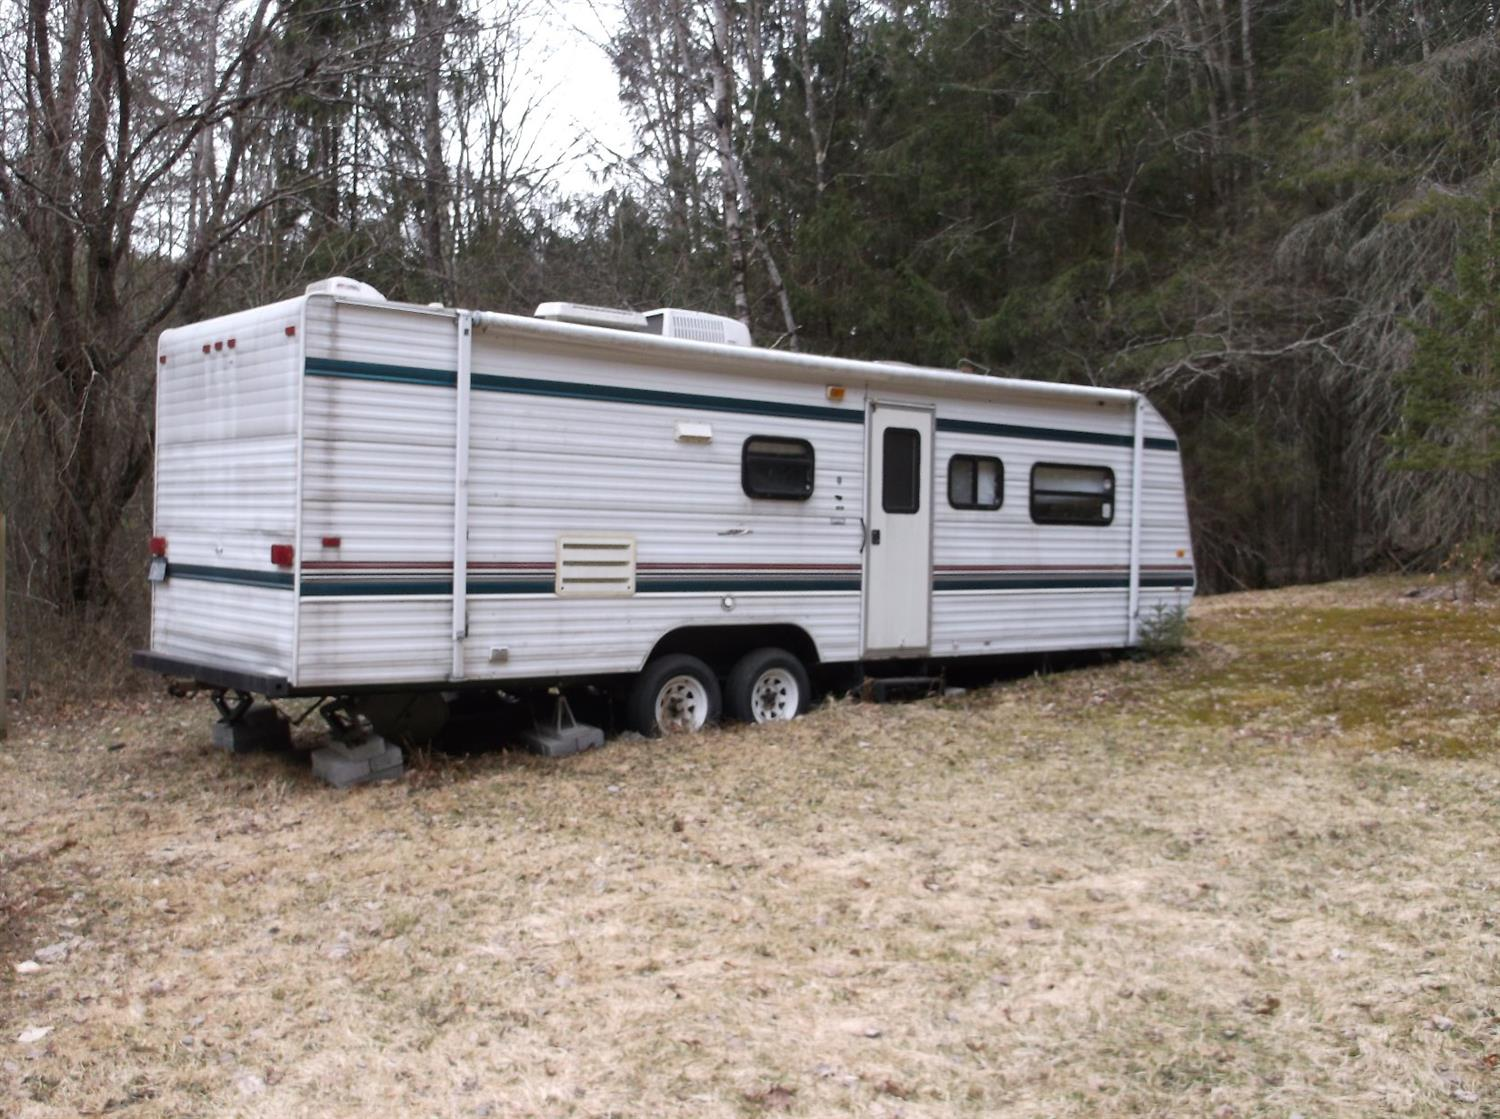 19,900 - 2 AcresNice Location With Driveway & Electric2 Camping Trailers Included